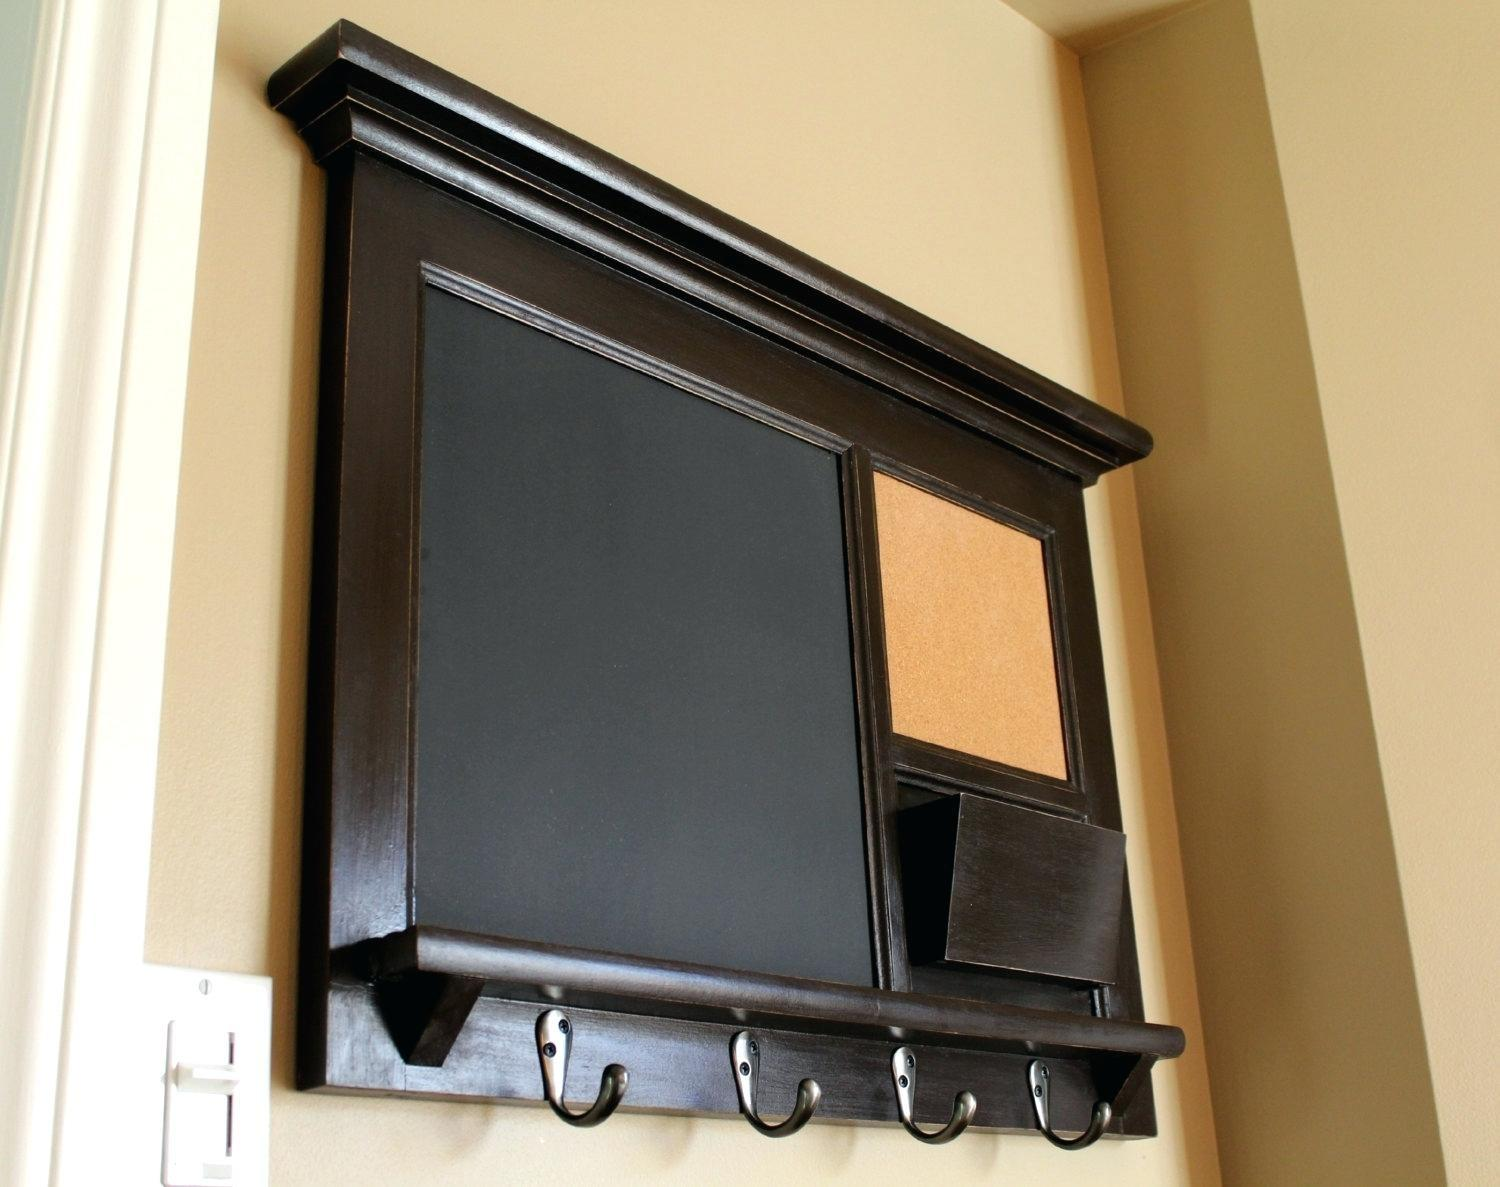 Chalkboard Magnetic Paint Newest Style Wall